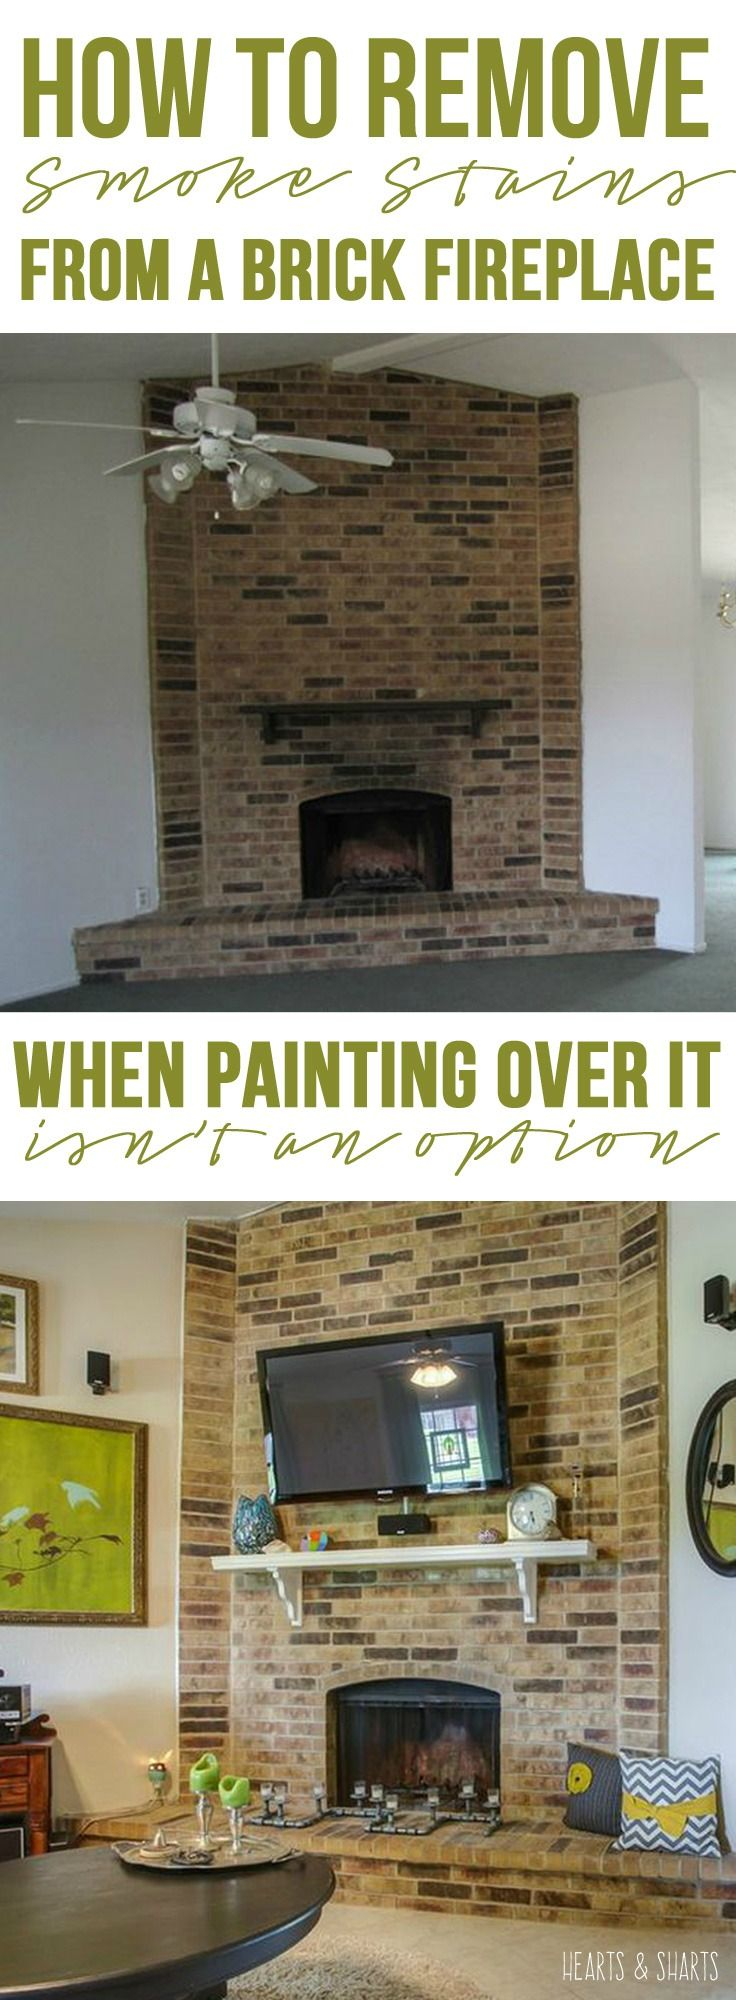 The 25+ best Cleaning brick ideas on Pinterest | The brick ...